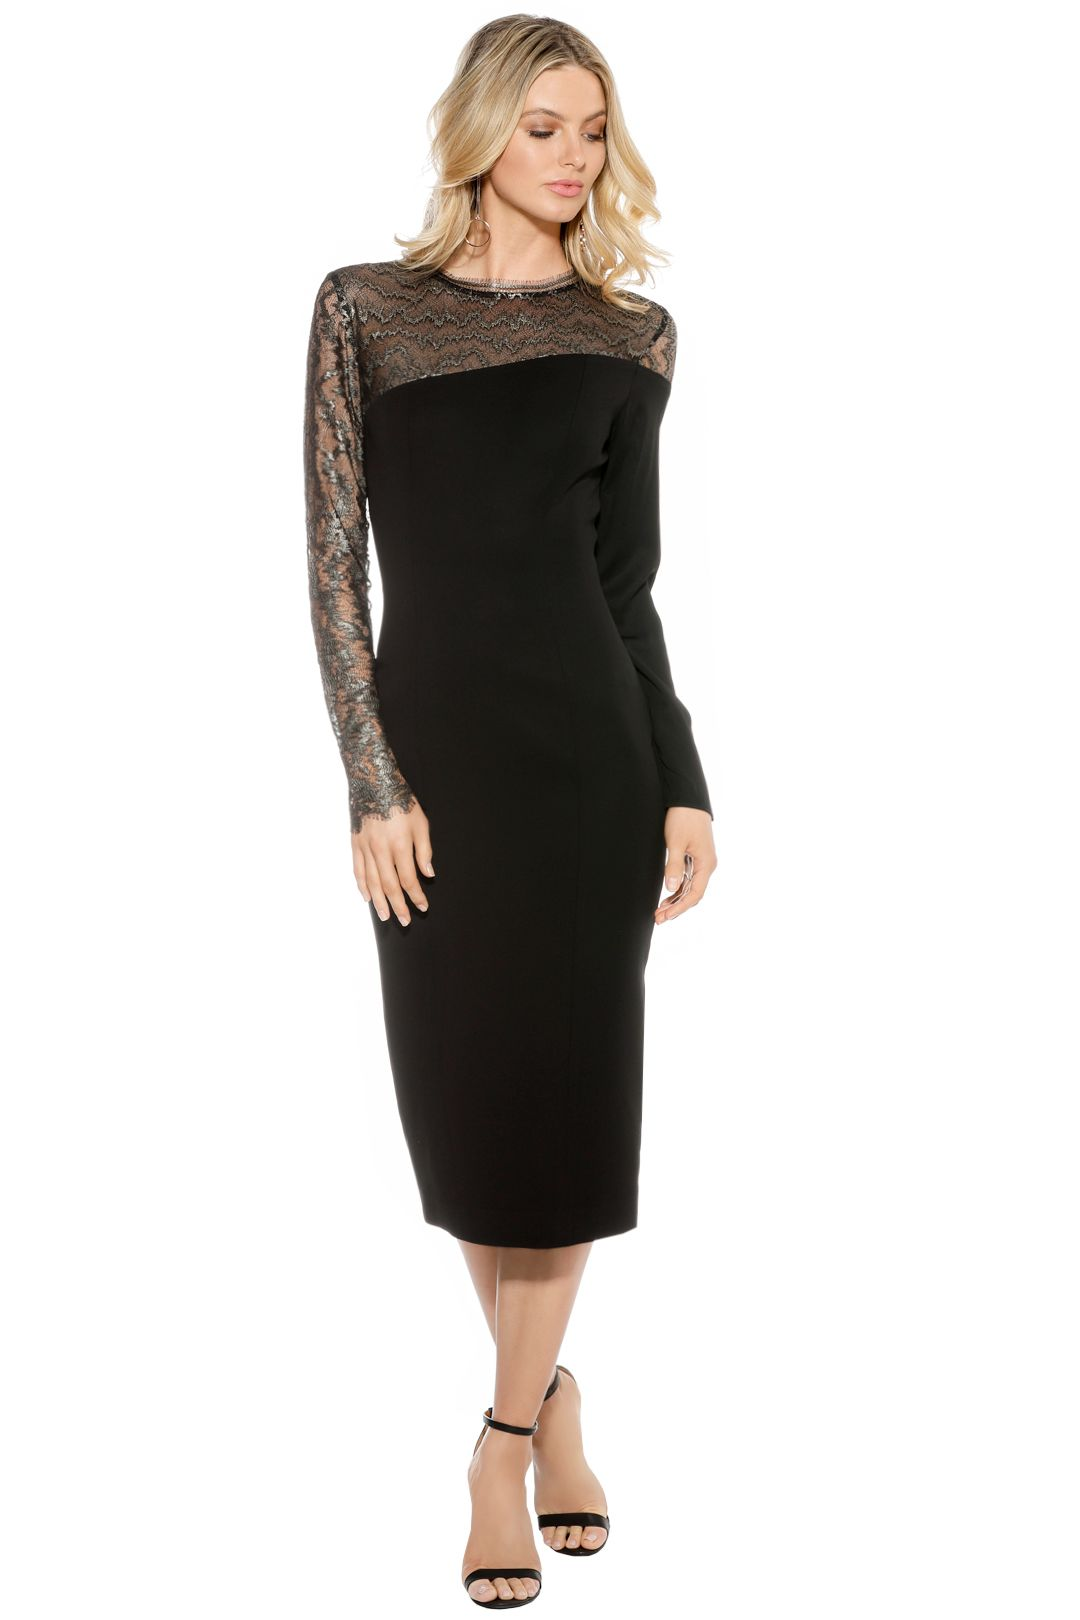 Ginger & Smart - Lace Sleeve Dress - Front